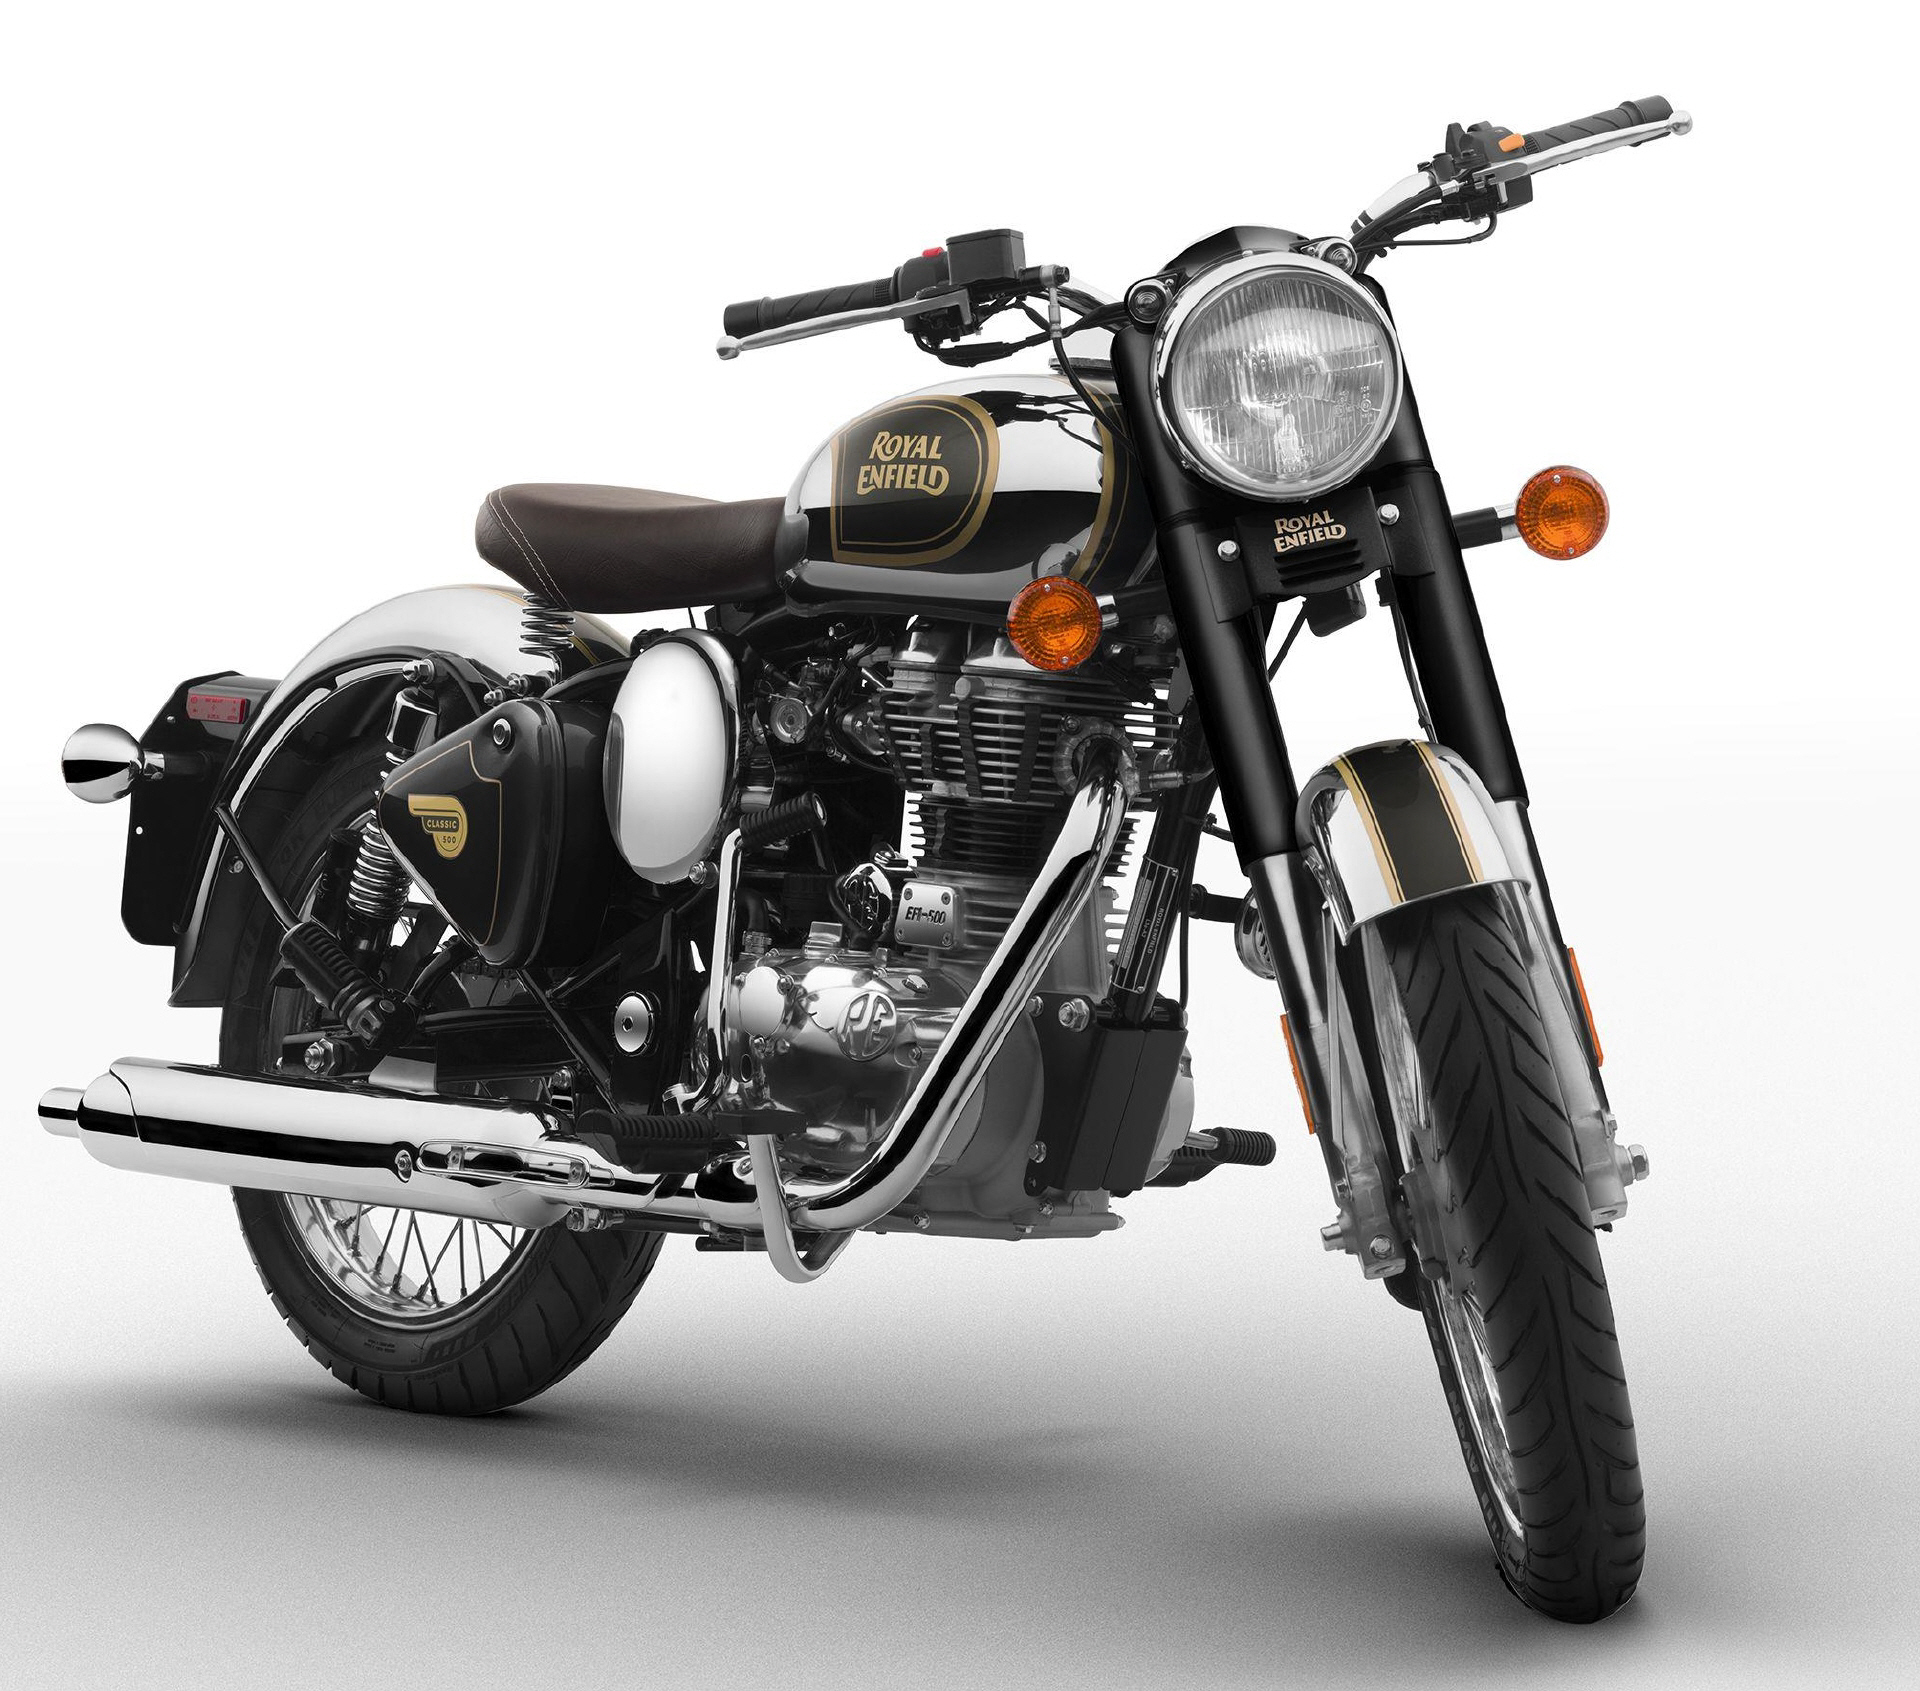 royalenfield_classic_chrome_black_02jpg